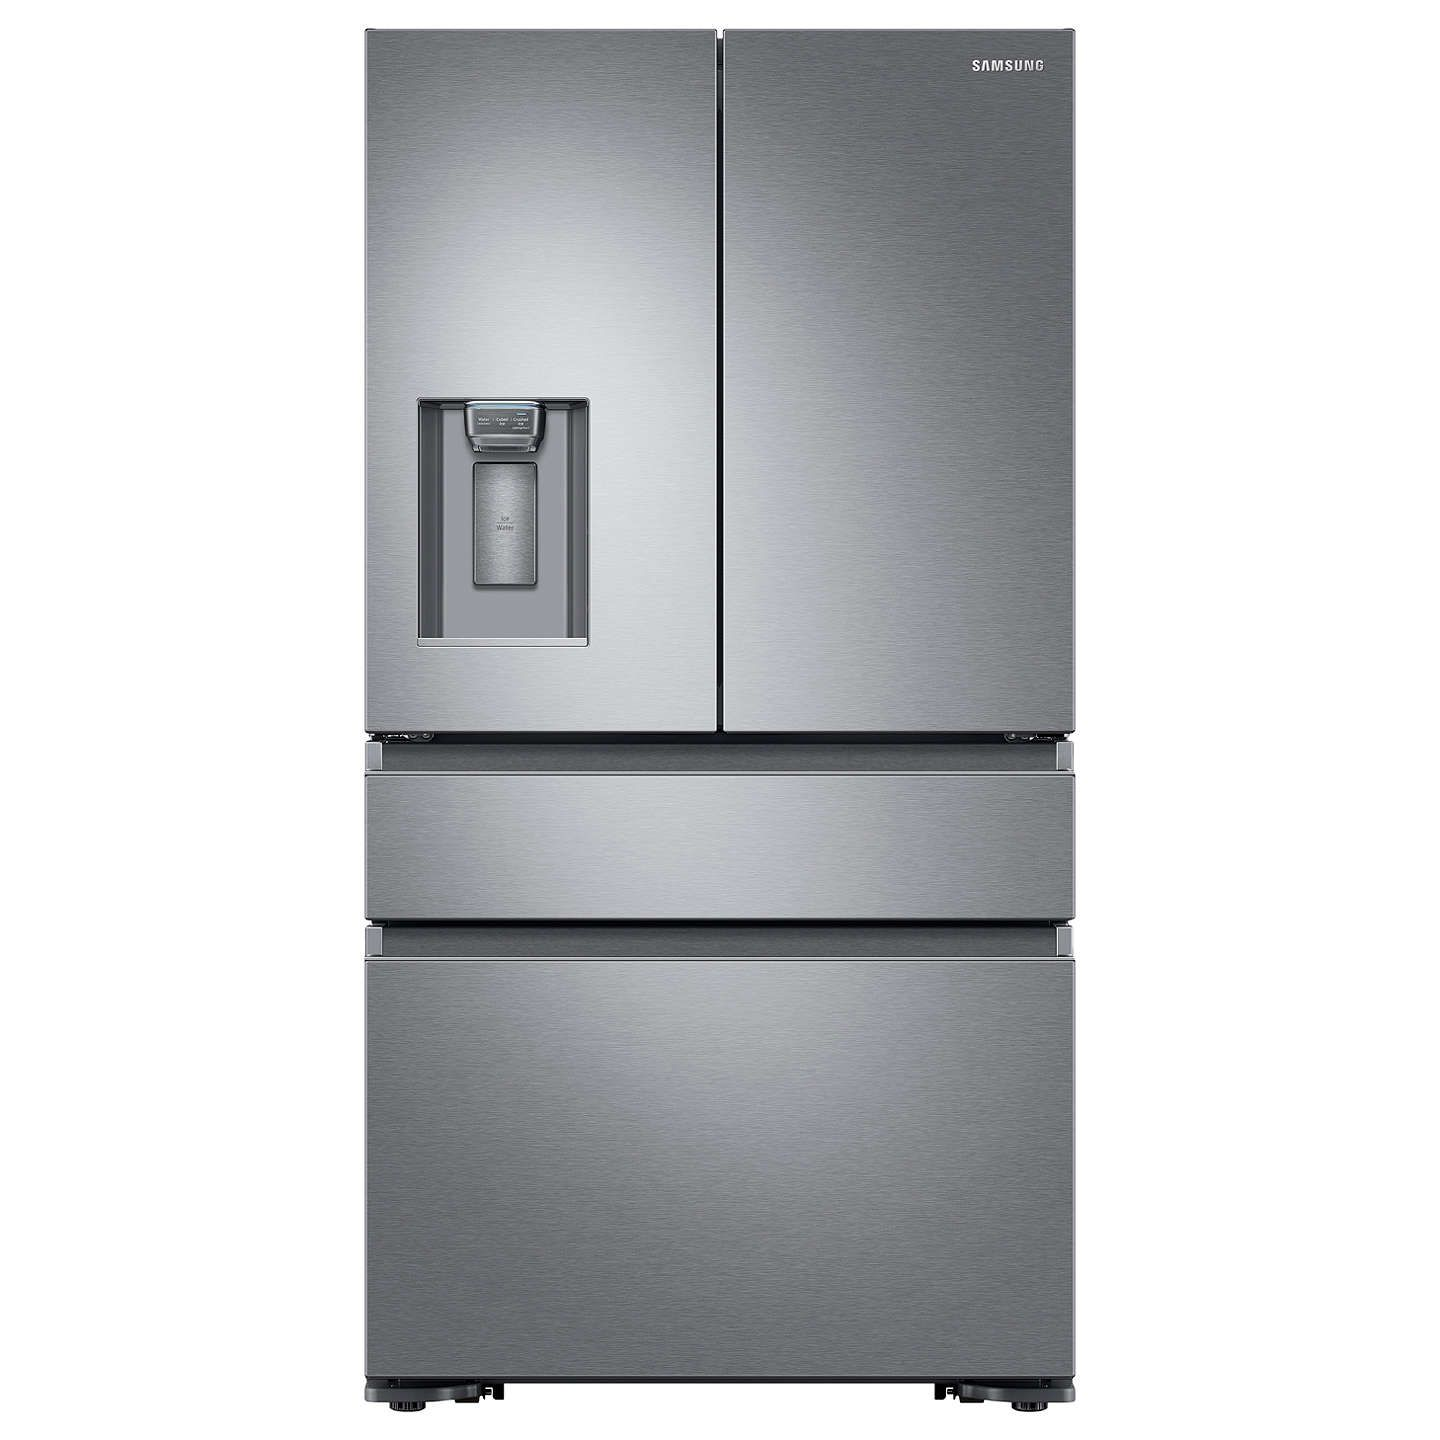 Samsung RF23M8080SR/EU Multi-Door Freestanding Fridge